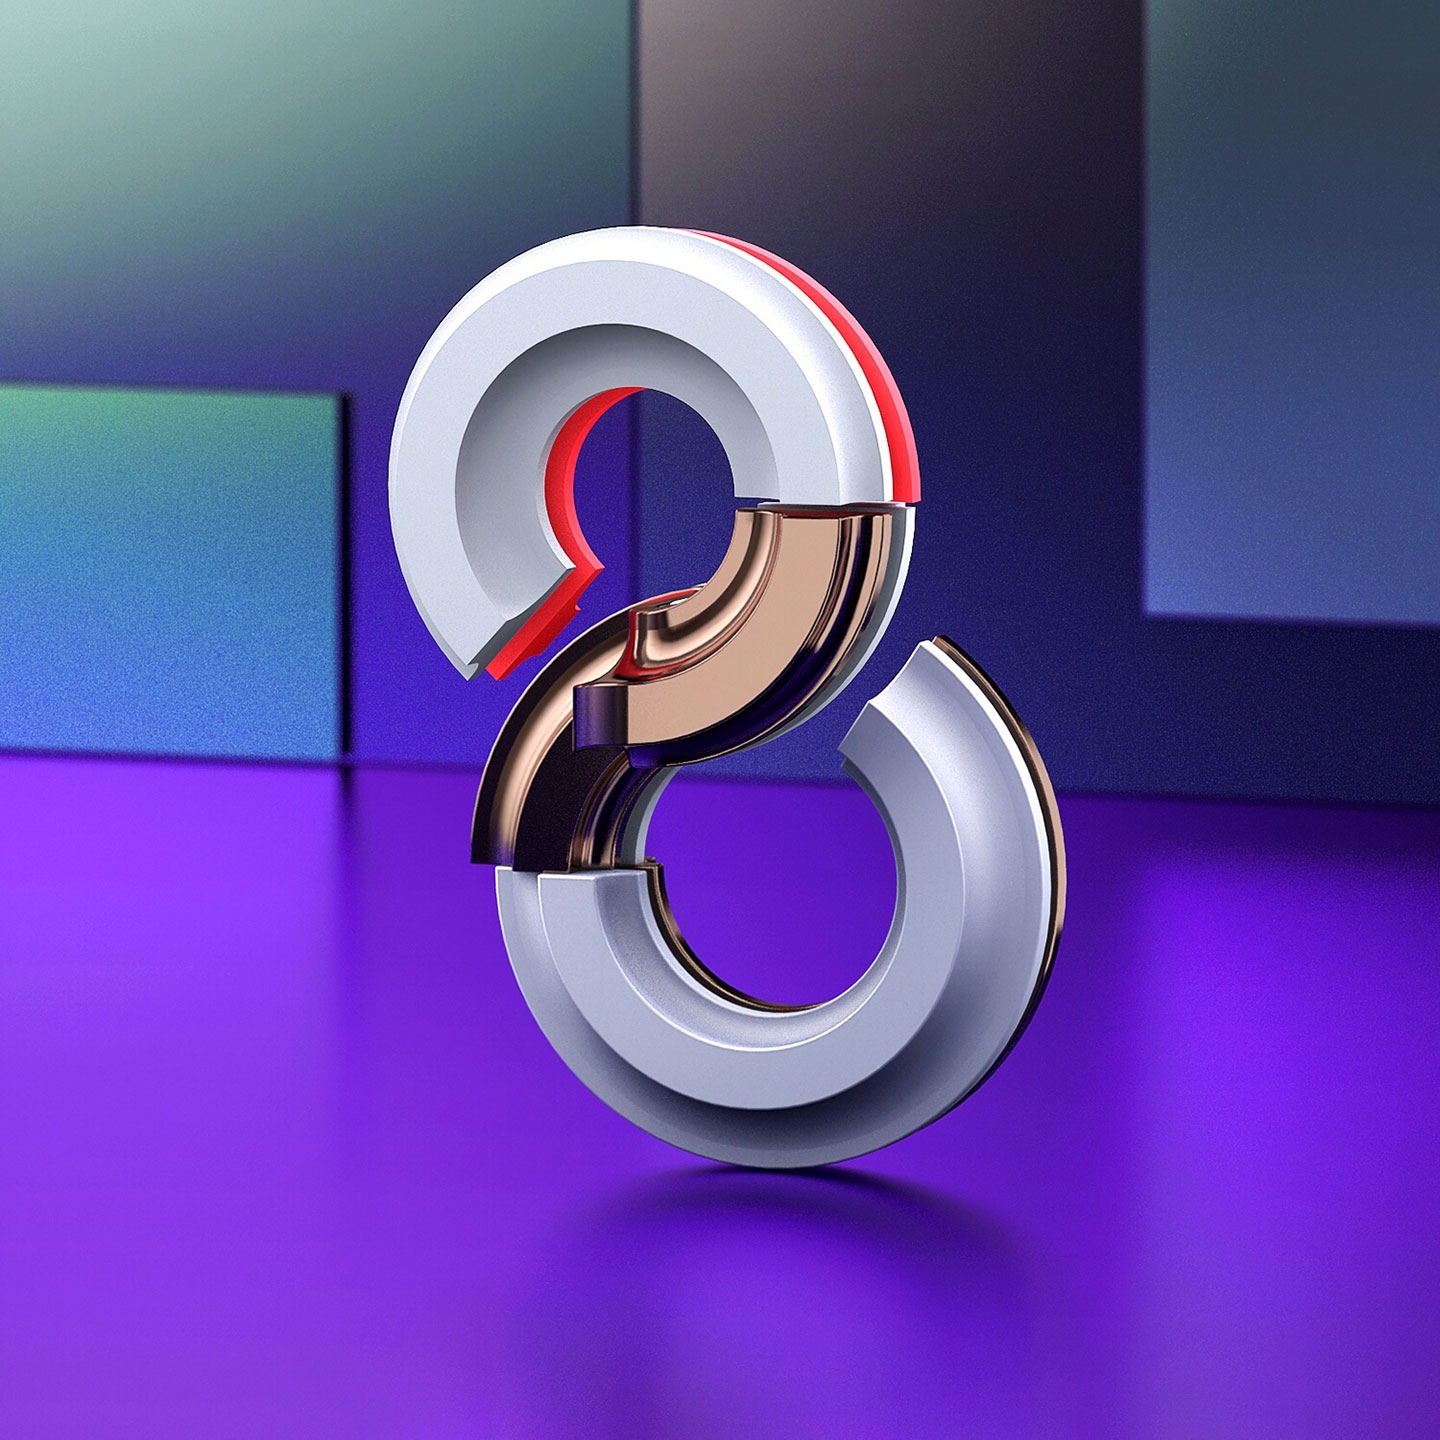 36 Days of Type 2017 - 3D number 8 design visual.